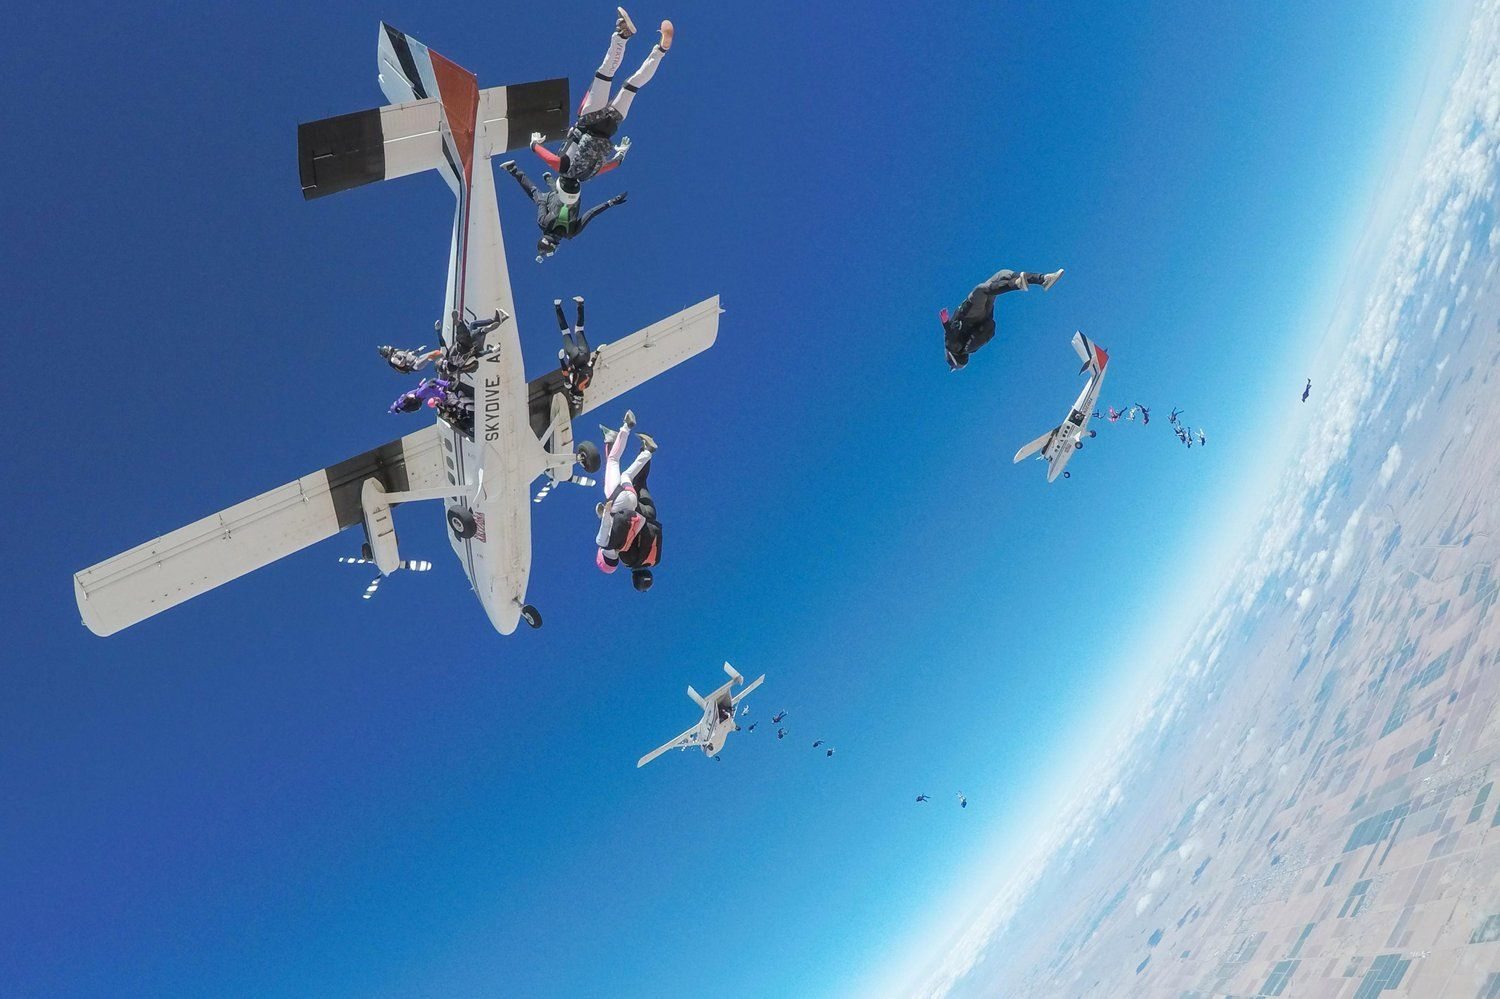 This Is What Takes To Break A Skydive World Record Skydiving World Records Skydive Arizona